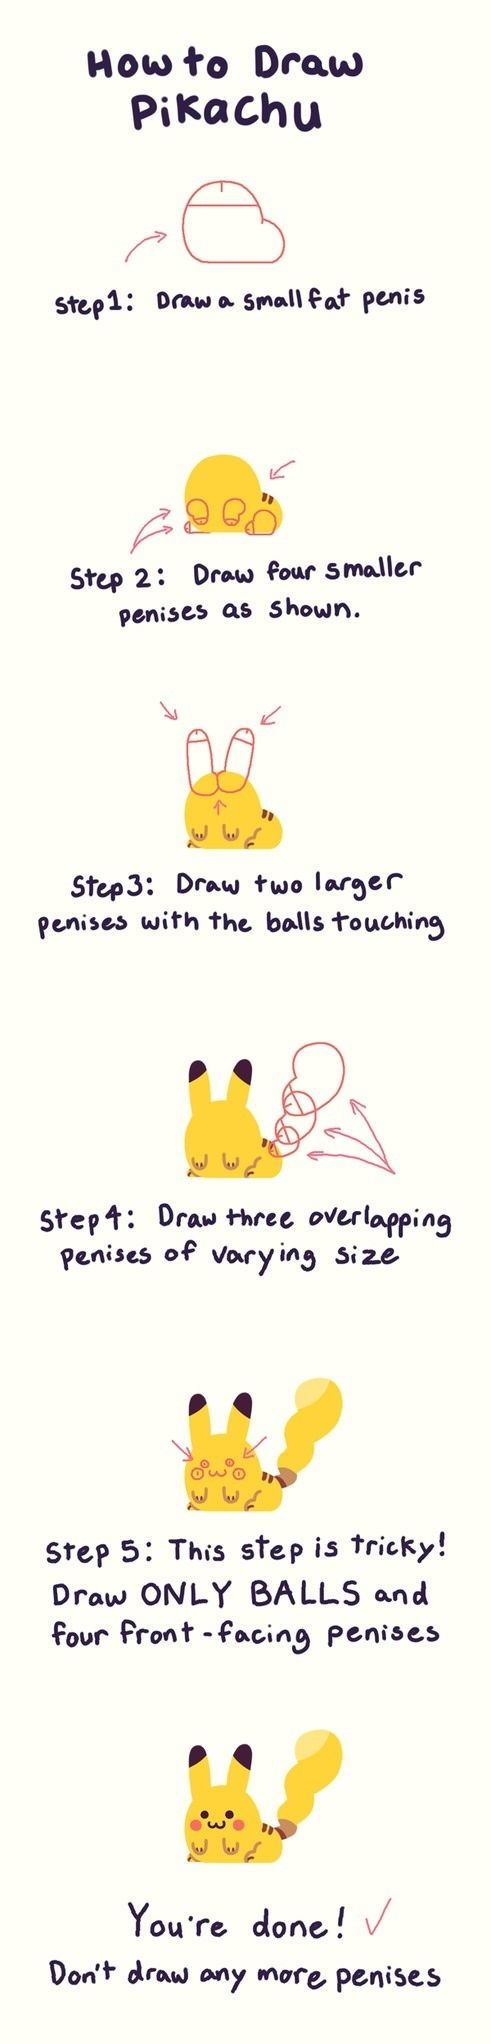 How to draw Pikachu | silly stuff | Funny drawings, Drawings